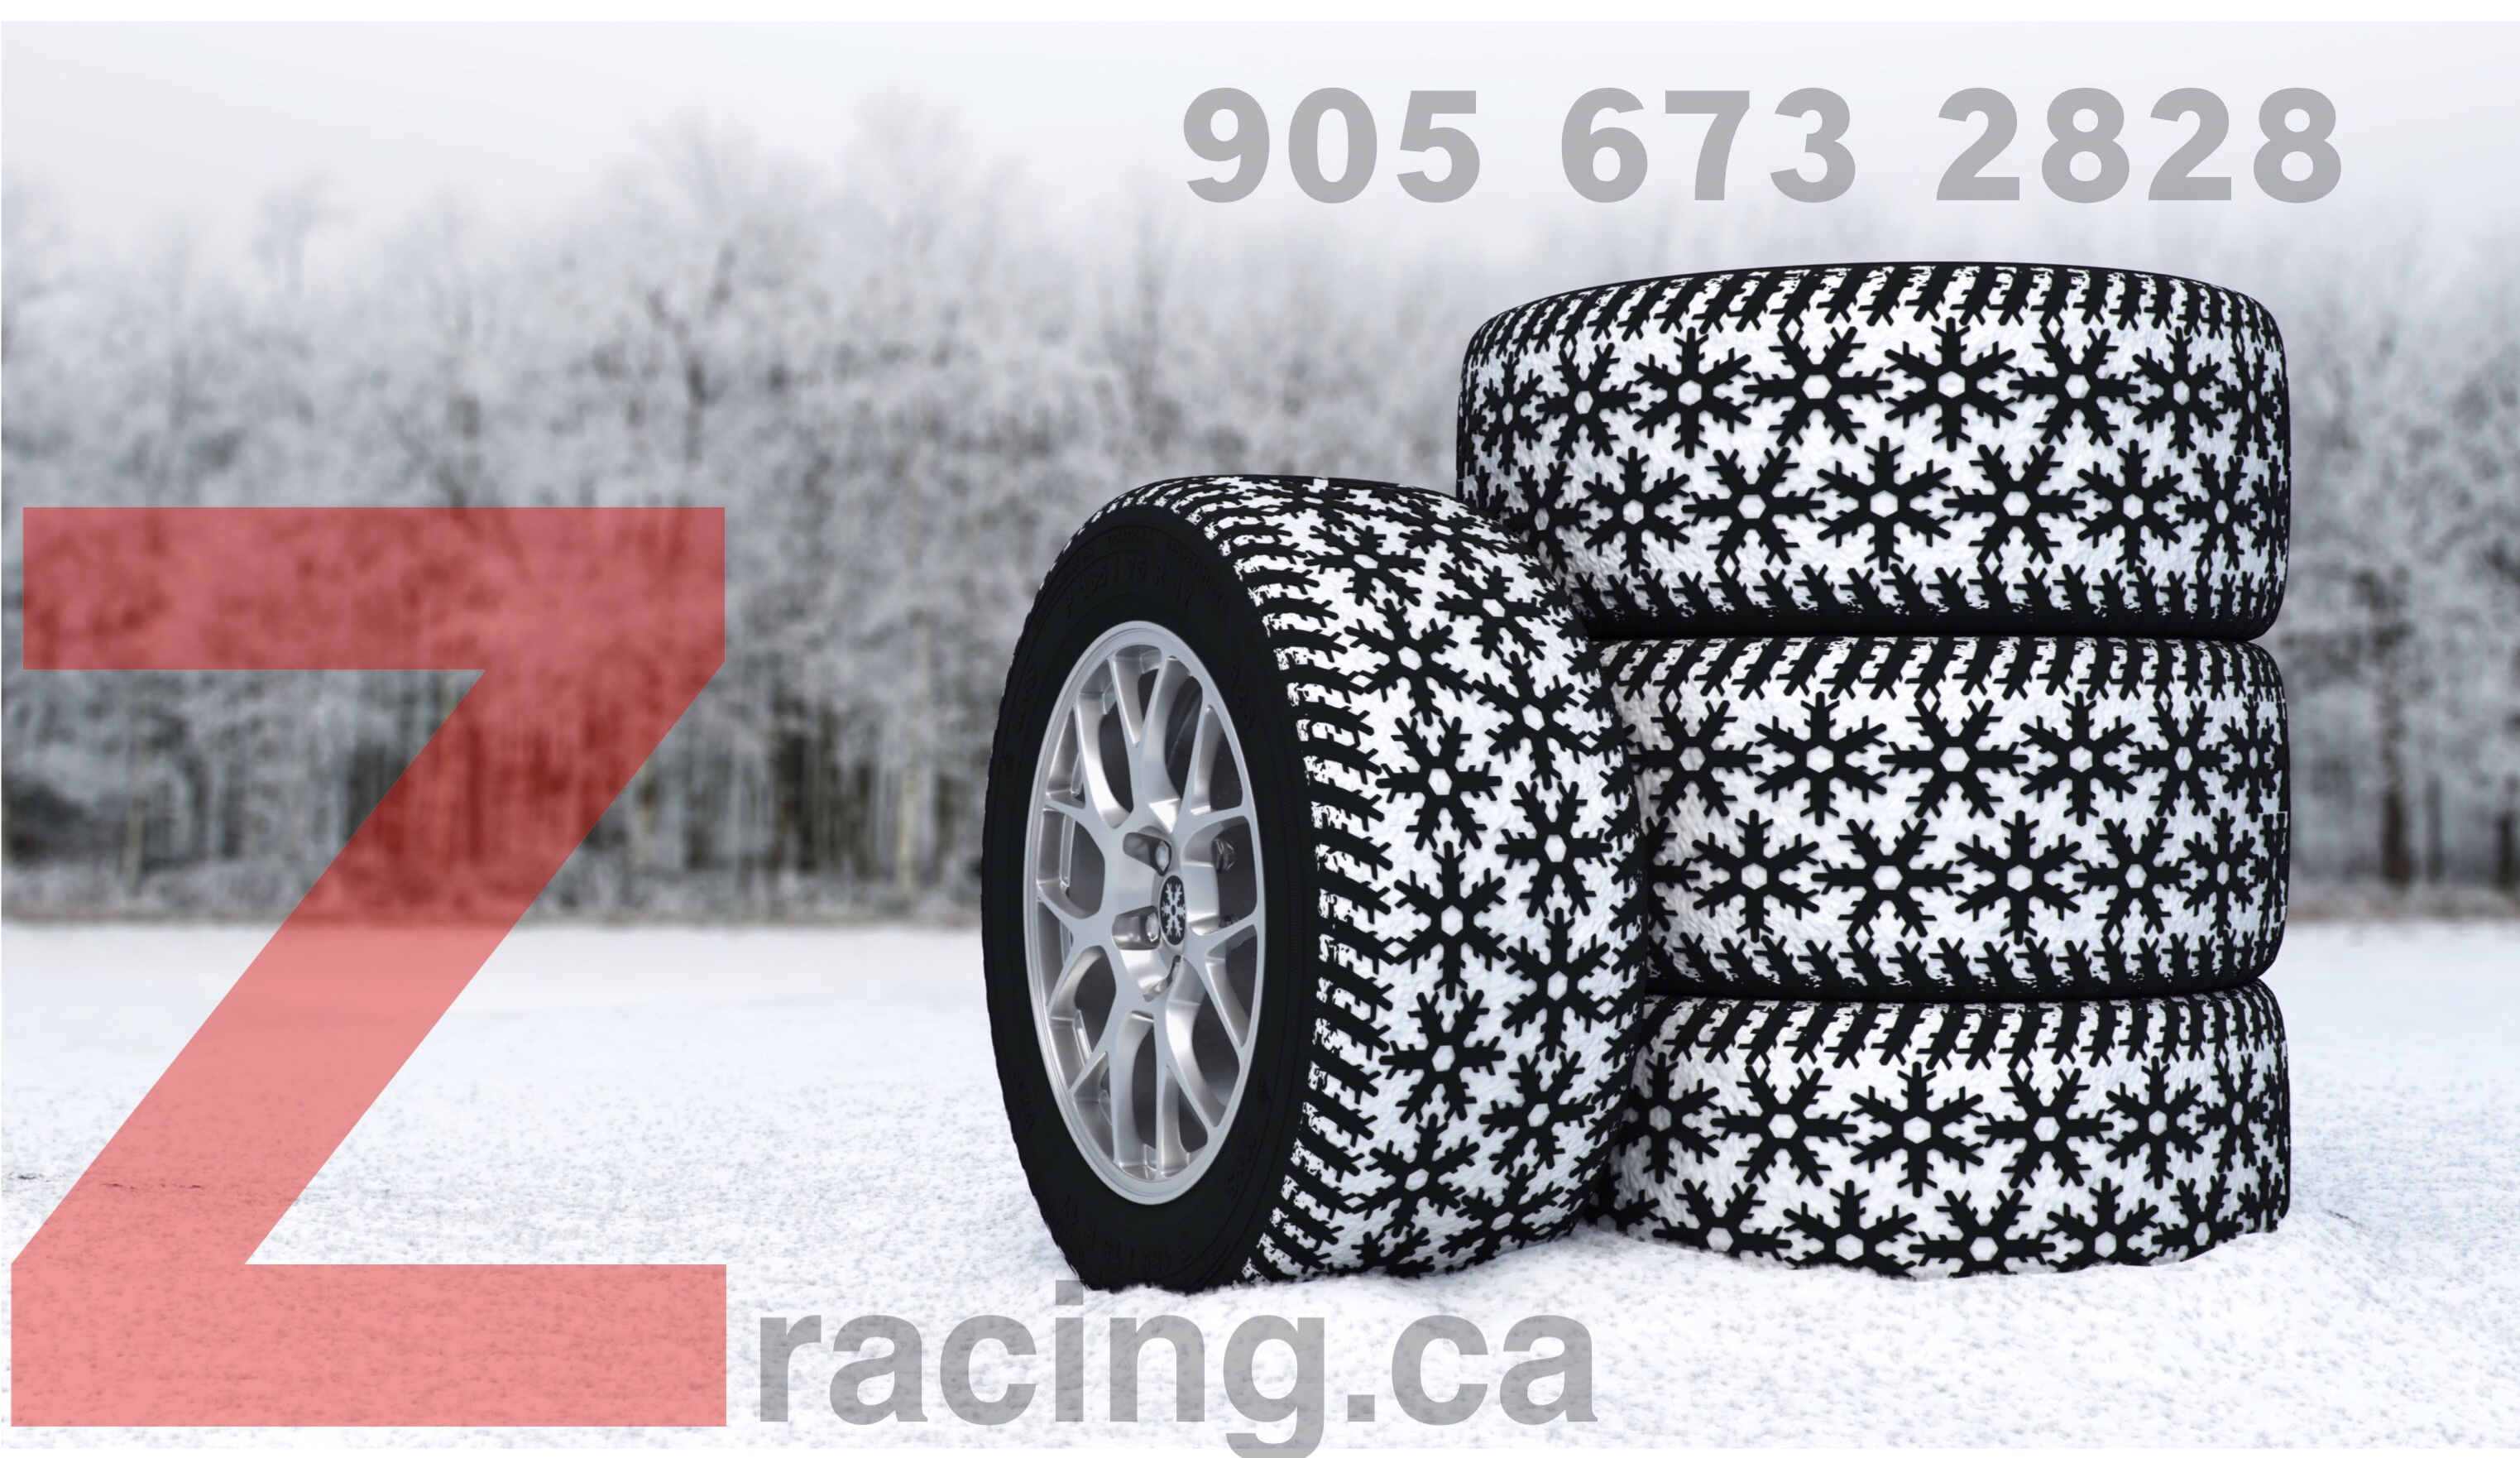 ACURA TLX Winter Tire Steel Wheel Package Call 905 673